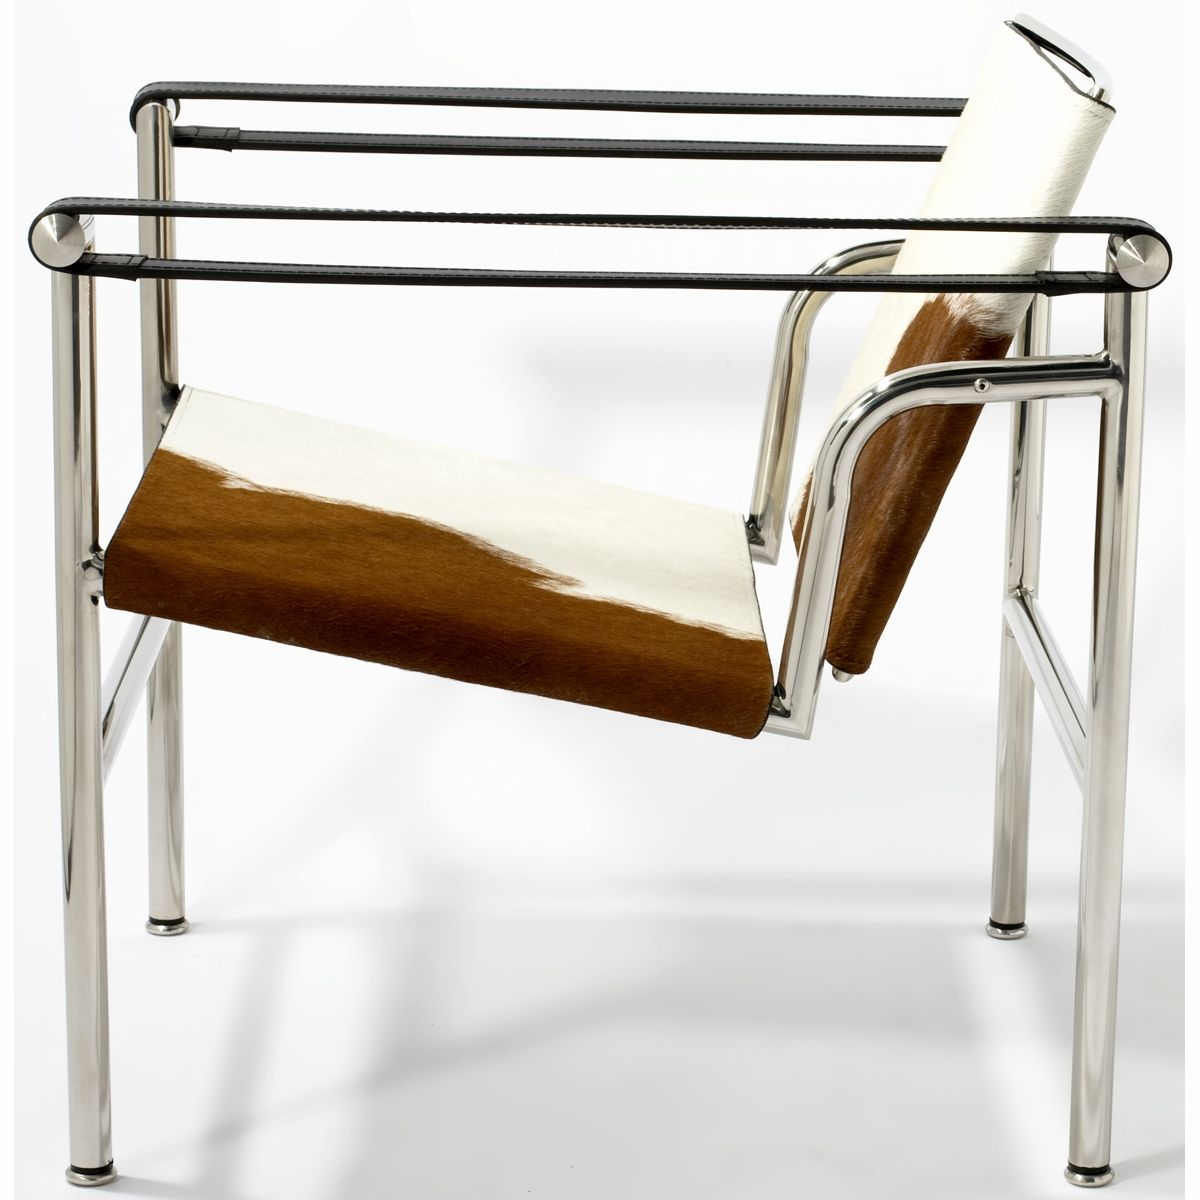 Le Corbusier Lc1 Arm Chair In 2020 Corbusier Chair Corbusier Furniture Chair Style